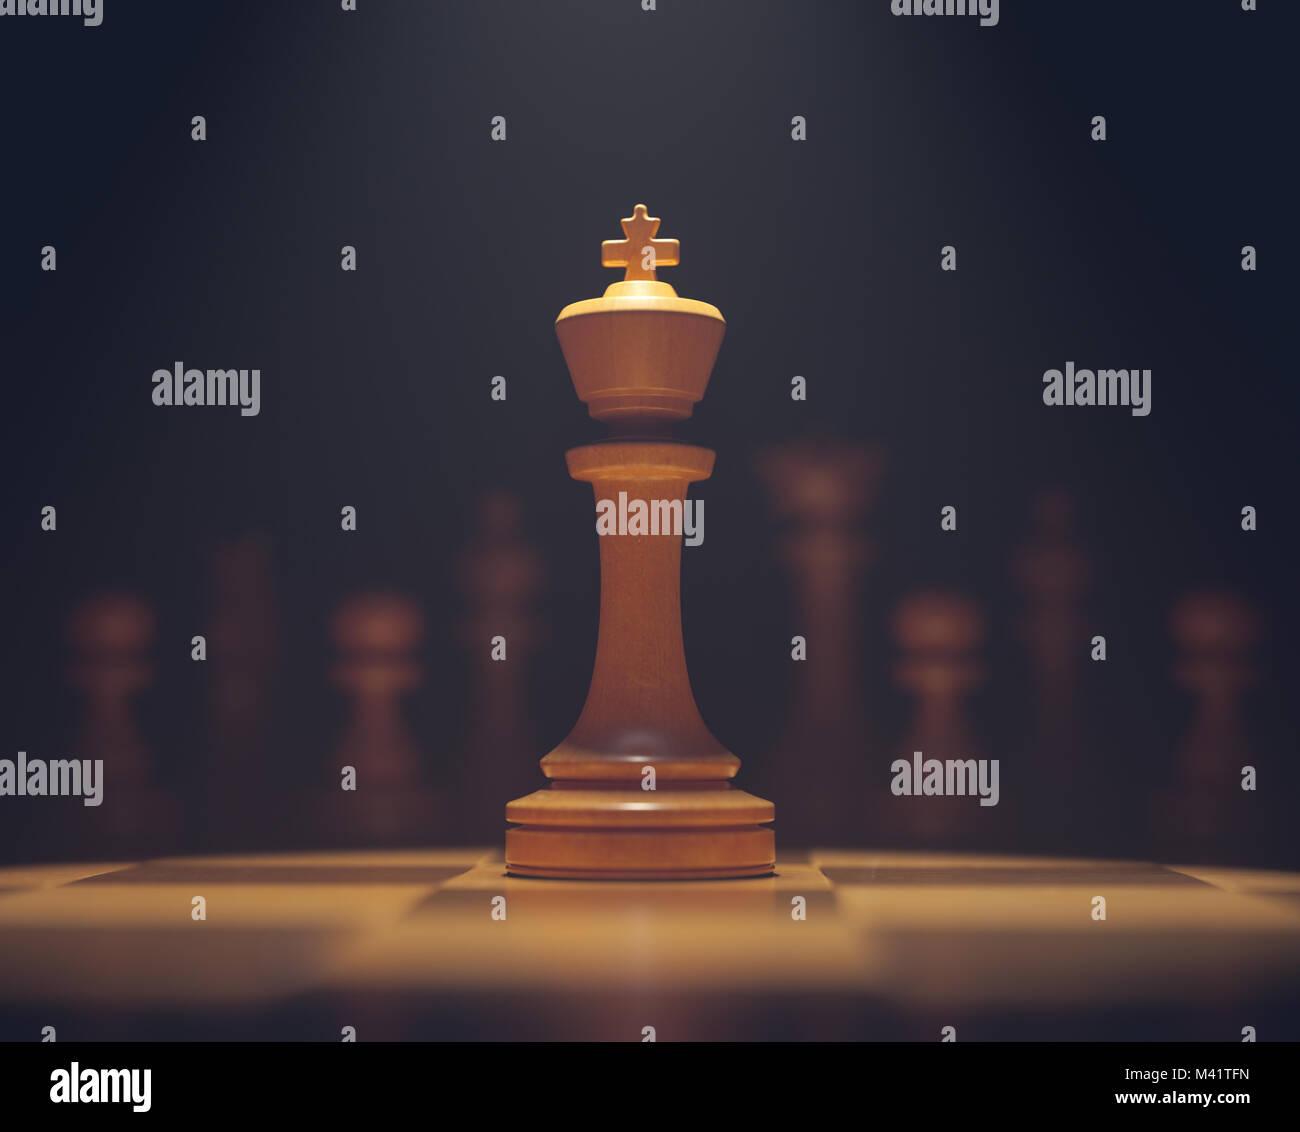 Pieces of chess game, image with shallow depth of field. - Stock Image